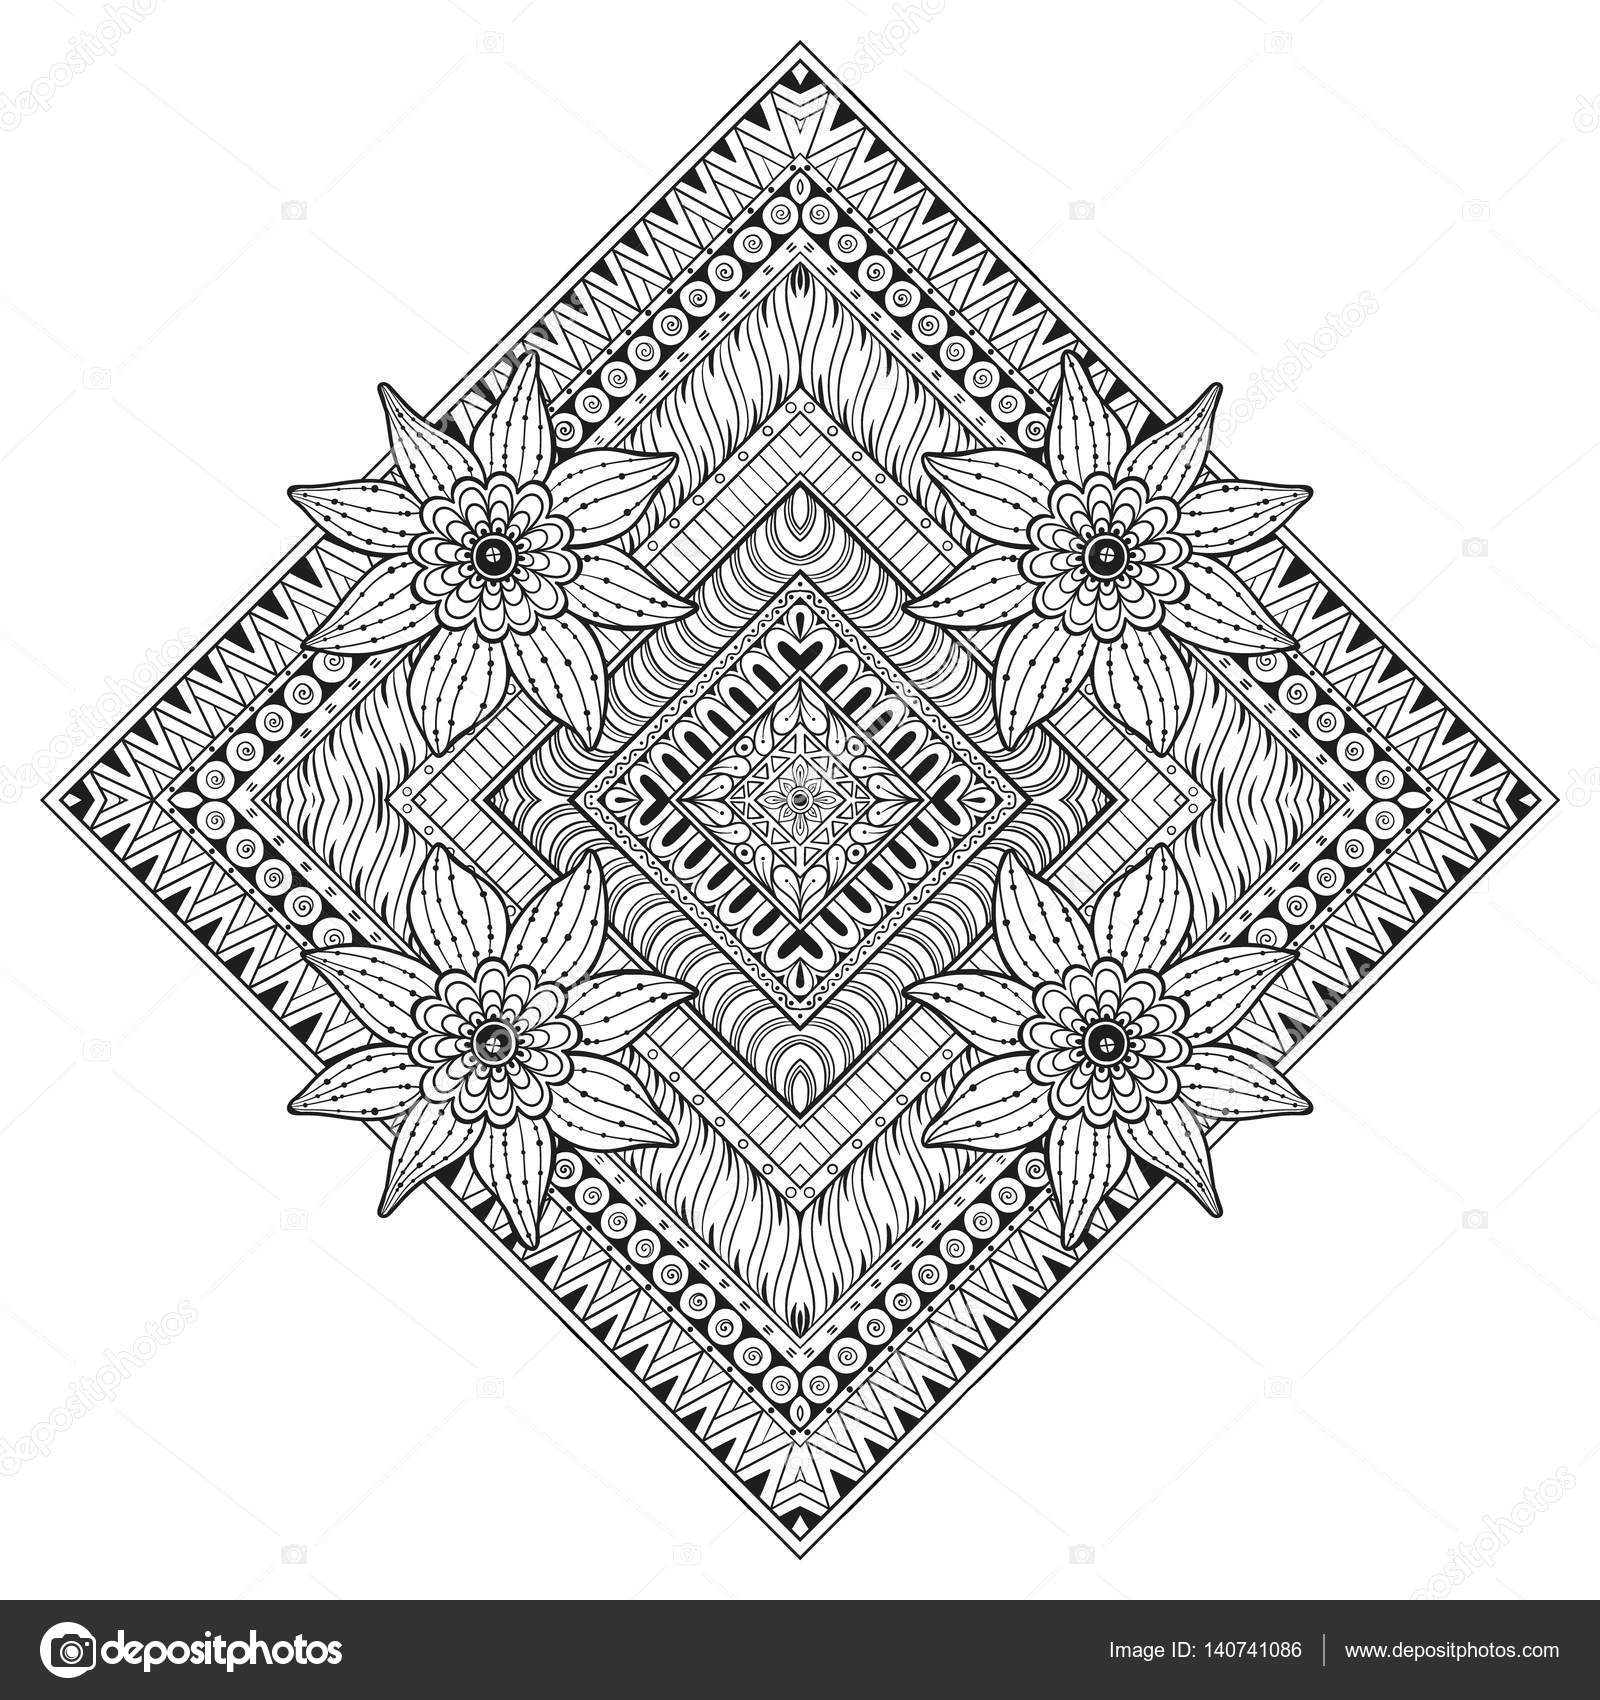 Perfect Card For Any Kind Of Design Birthday And Other Holiday Kaleidoscope Medallion Coloring Book Yoga India Arabic Islam Motifs